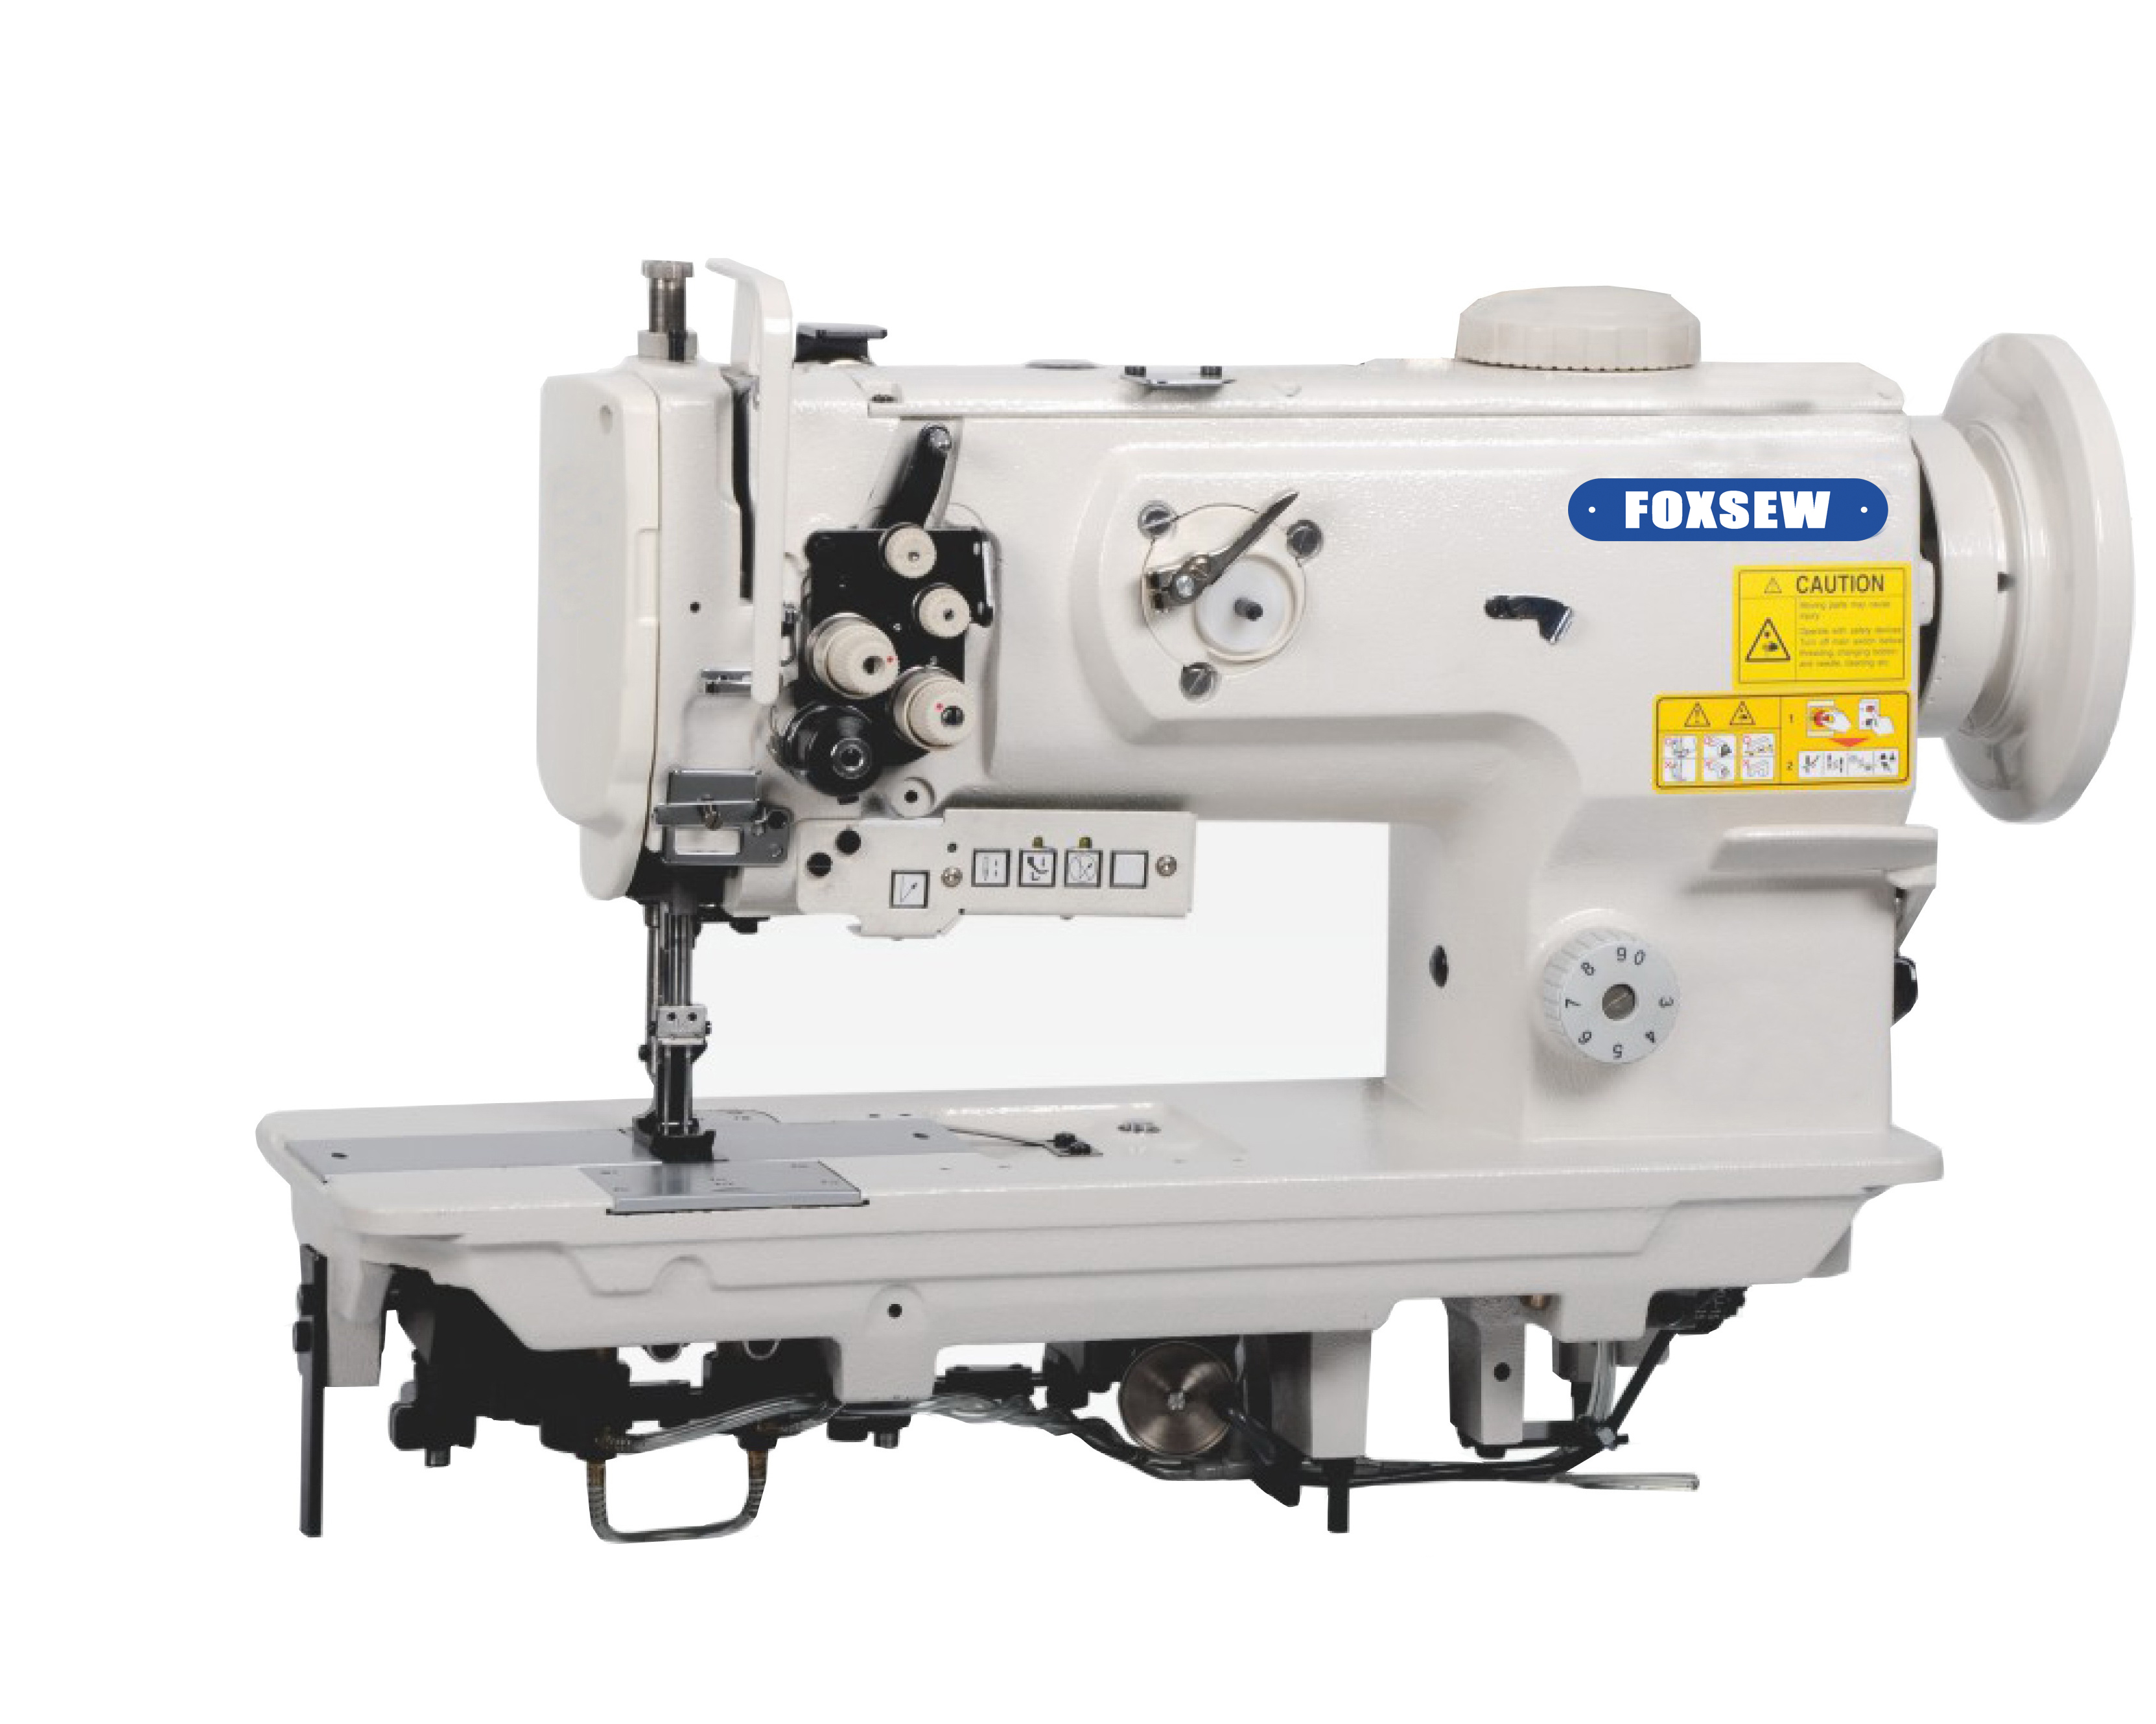 KD-1560N Double Needle Unison Feed Walking Foot Heavy Duty Lockstitch Sewing Machine